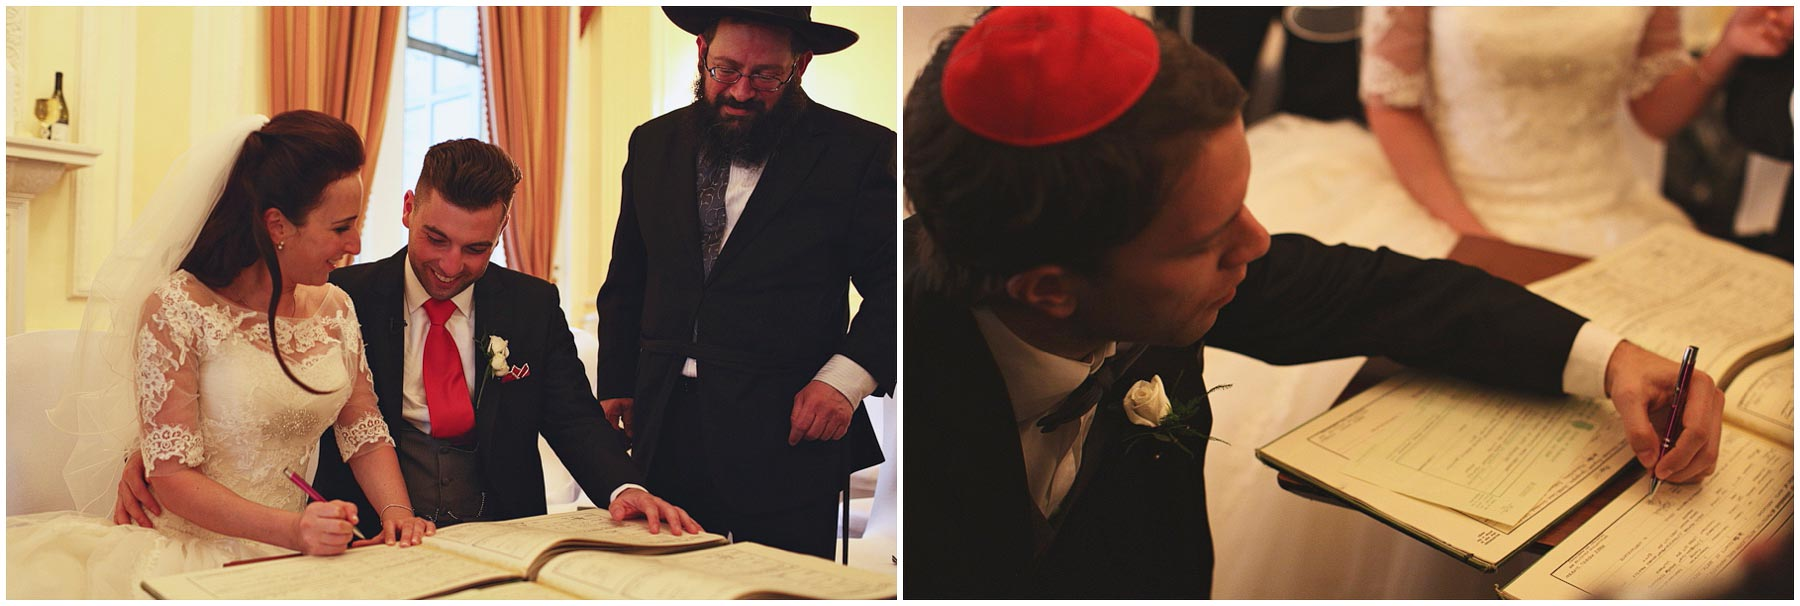 Jewish-Wedding-Photography_0083